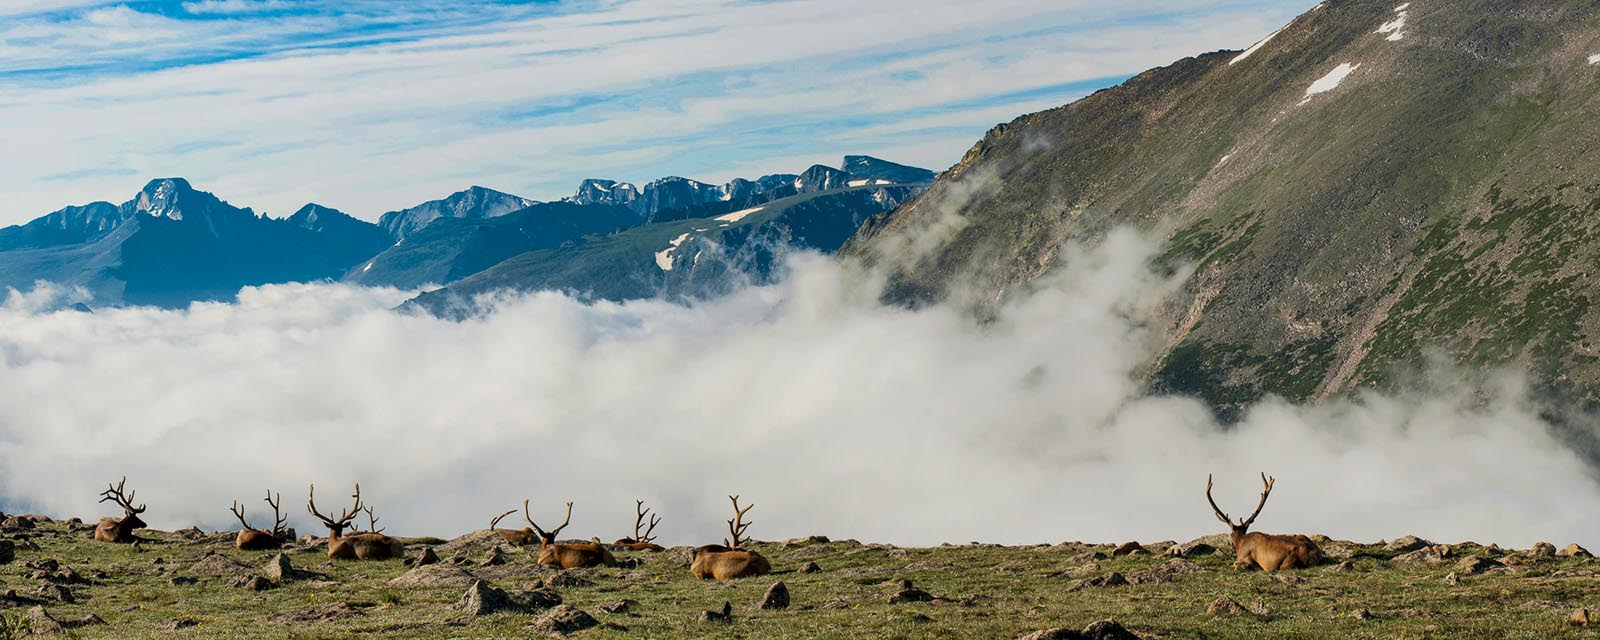 Colorado, Rocky Mountain National Park, artist-in-residence, landscapes, national park, panorama, photo